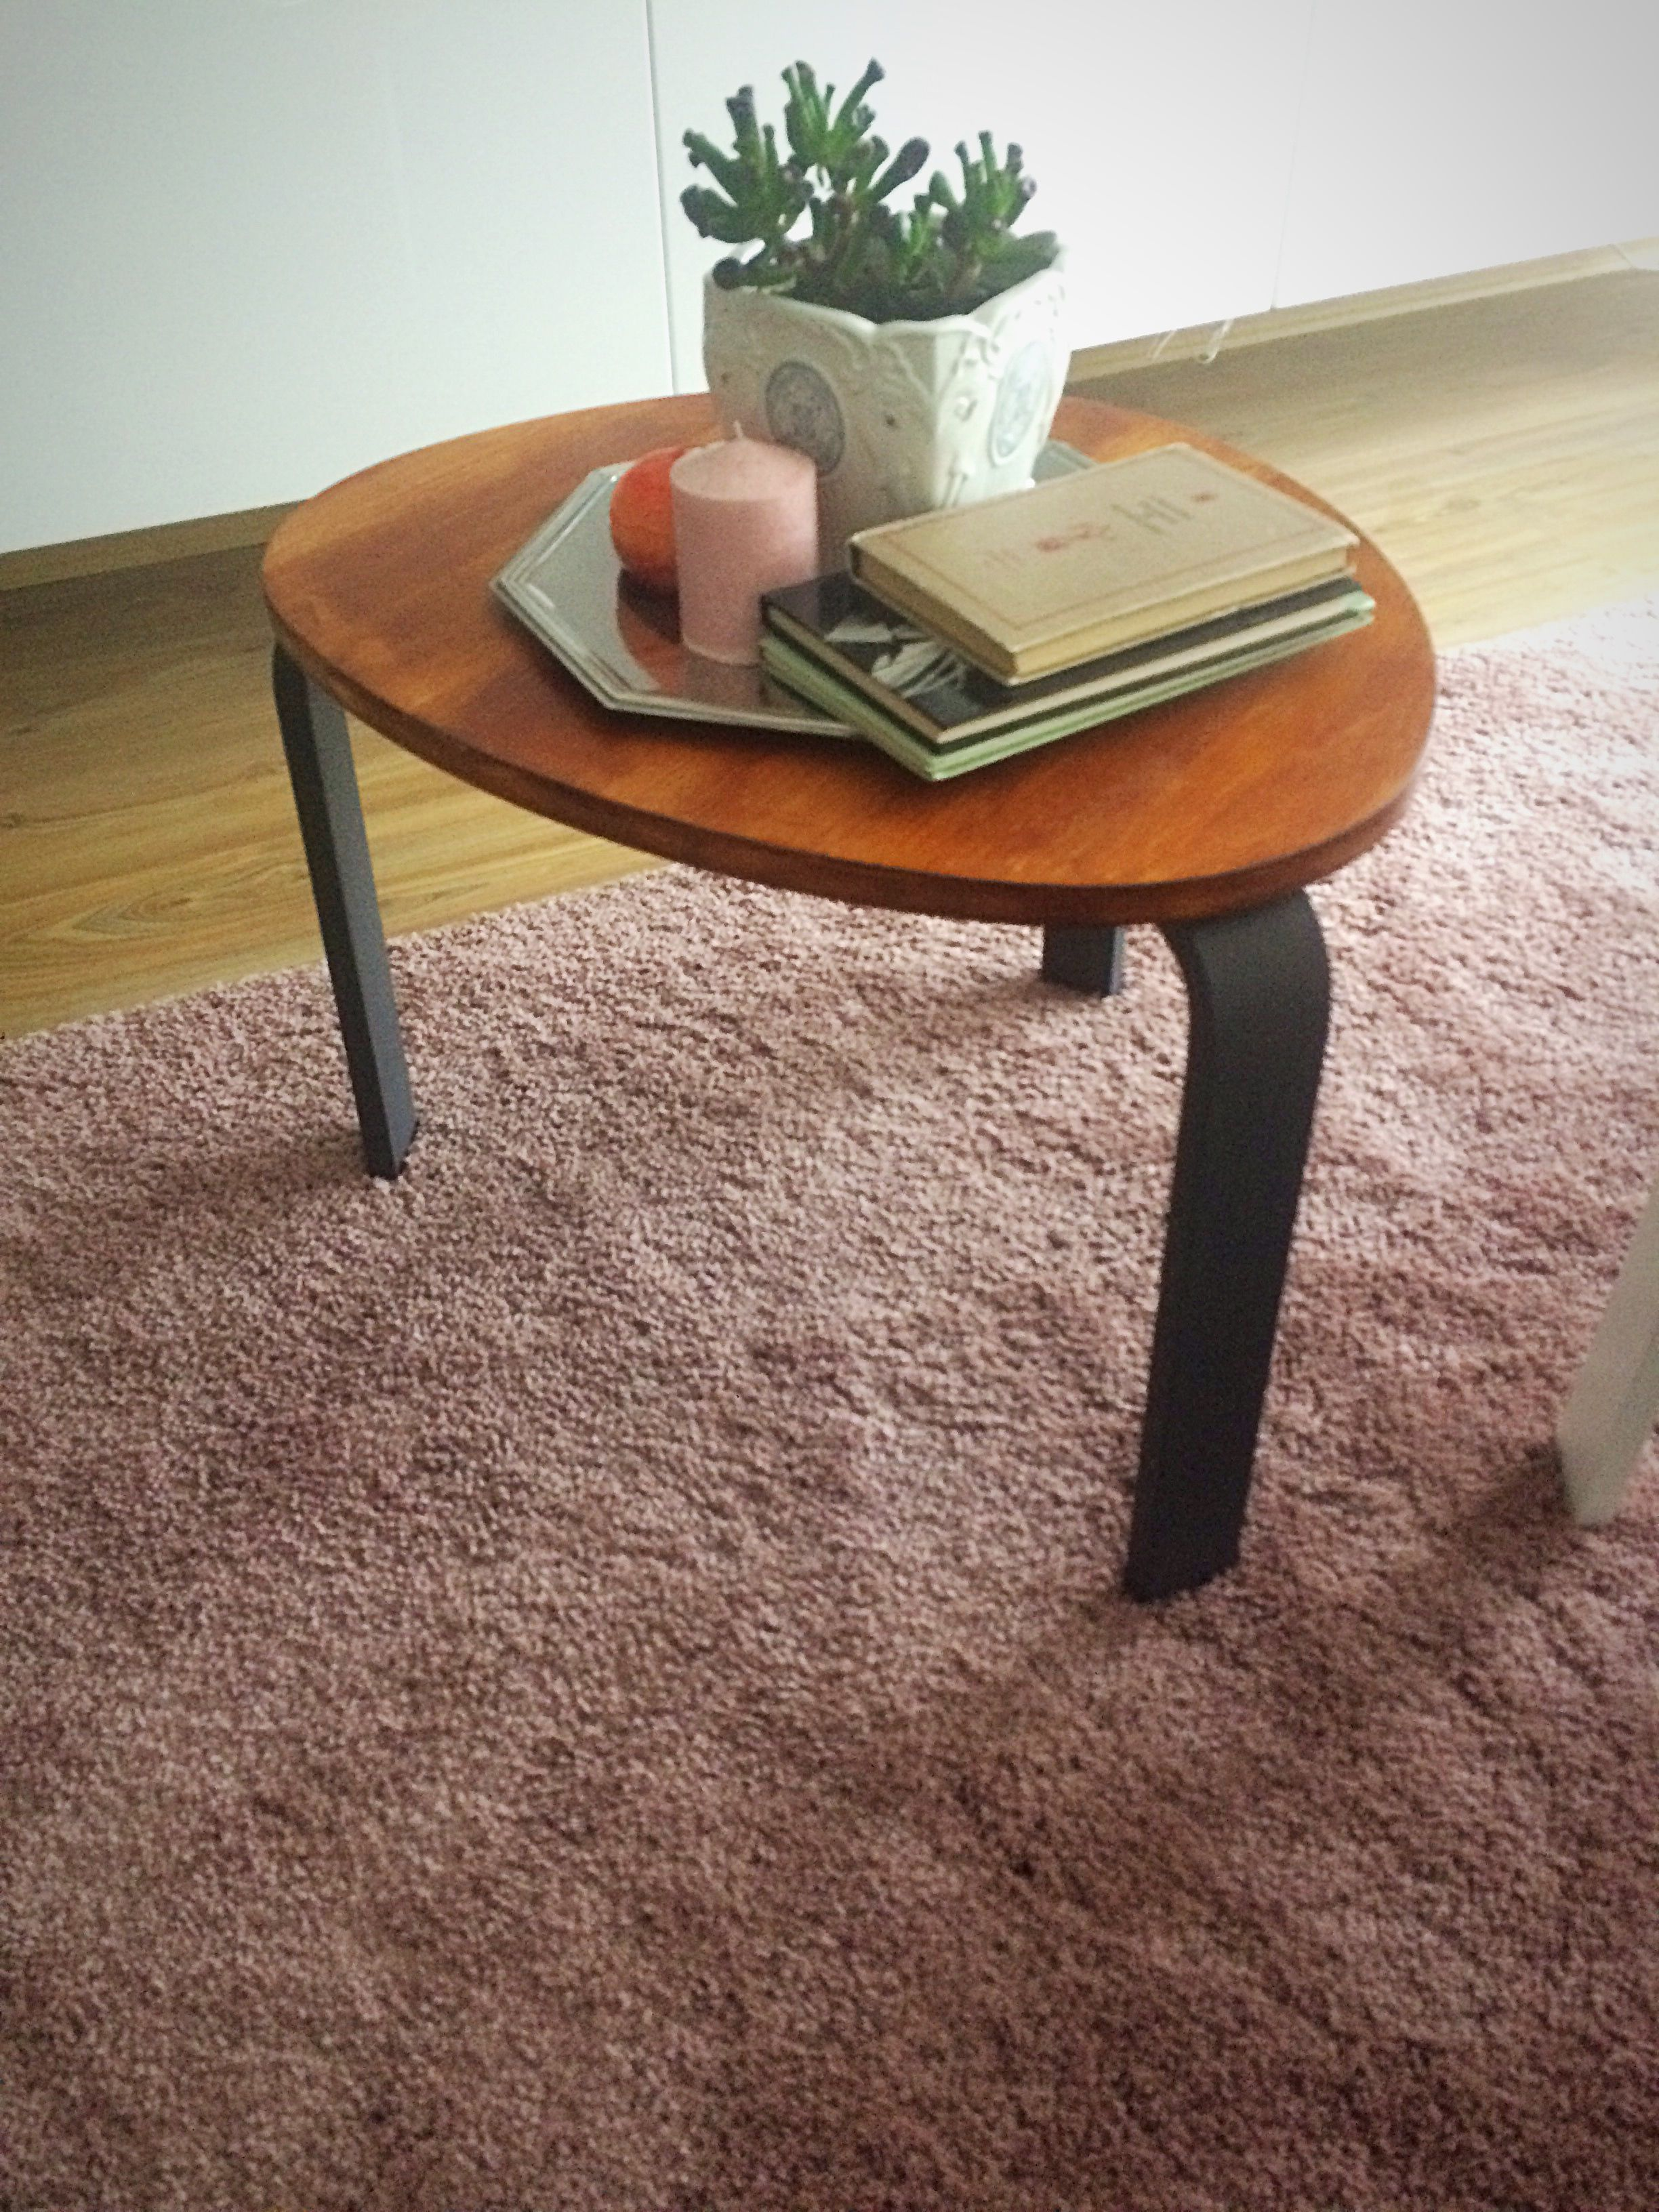 Ikea Svalsta Coffee Table Hack